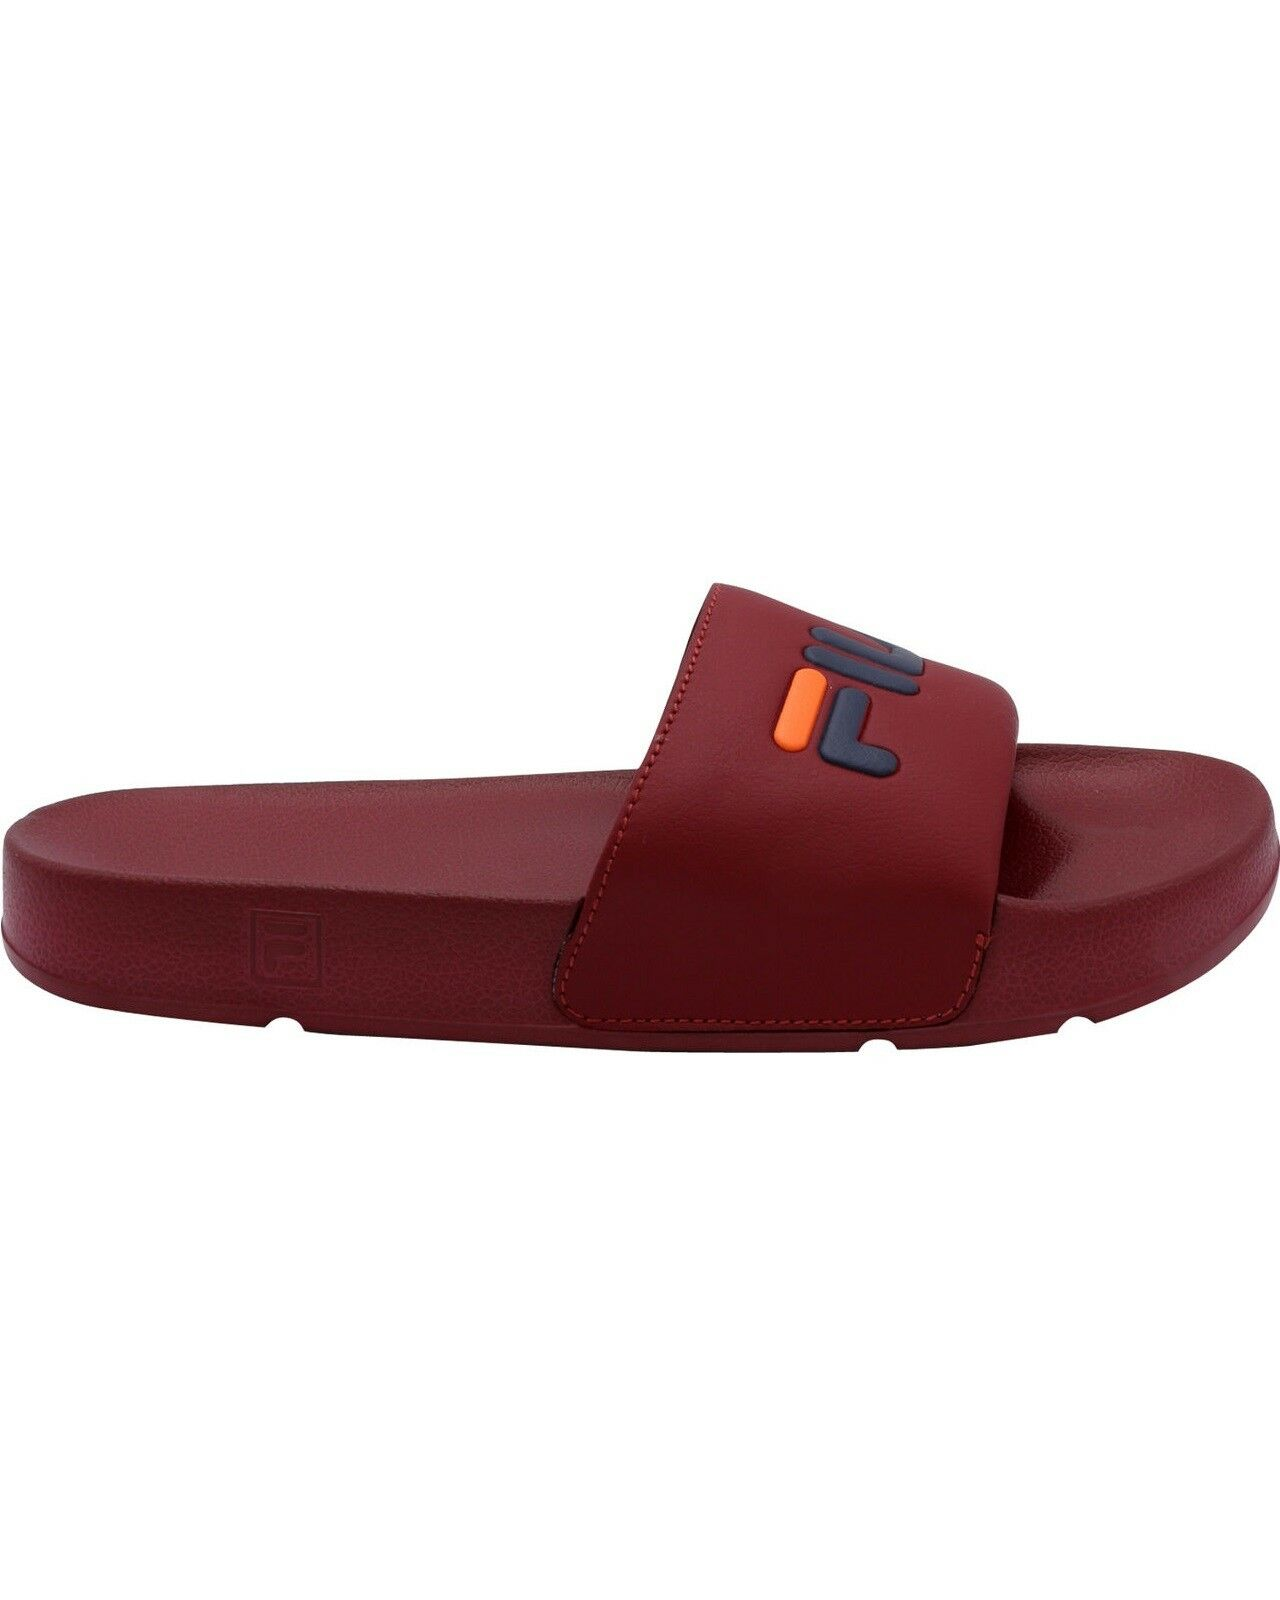 1SM00010-632 MENS  FILA MENS SLIDES New shoes for men and women, limited time discount